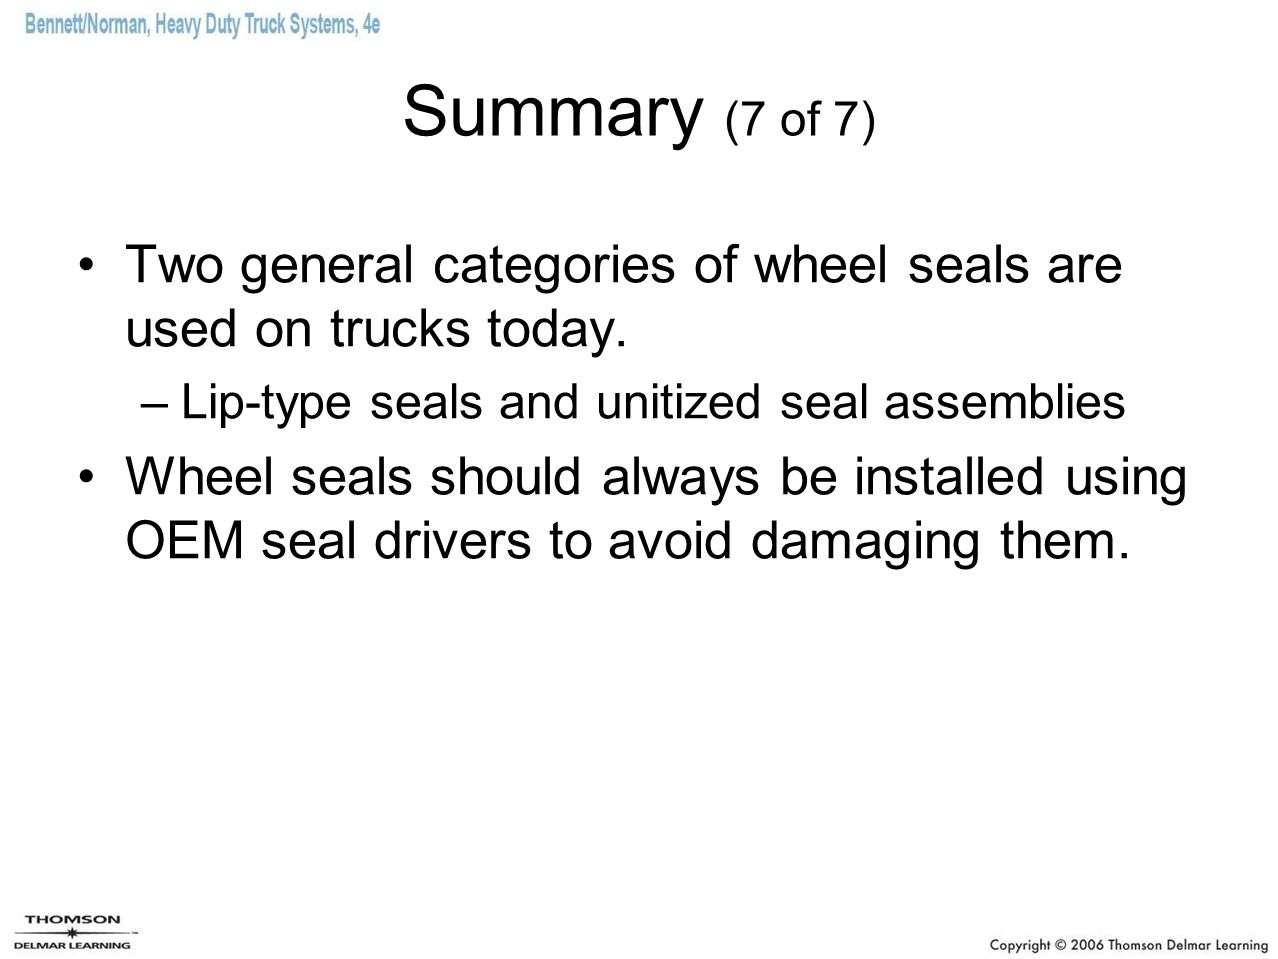 Summary (7 of 7) Two general categories of wheel seals are used on trucks today. Lip-type seals and unitized seal assemblies.